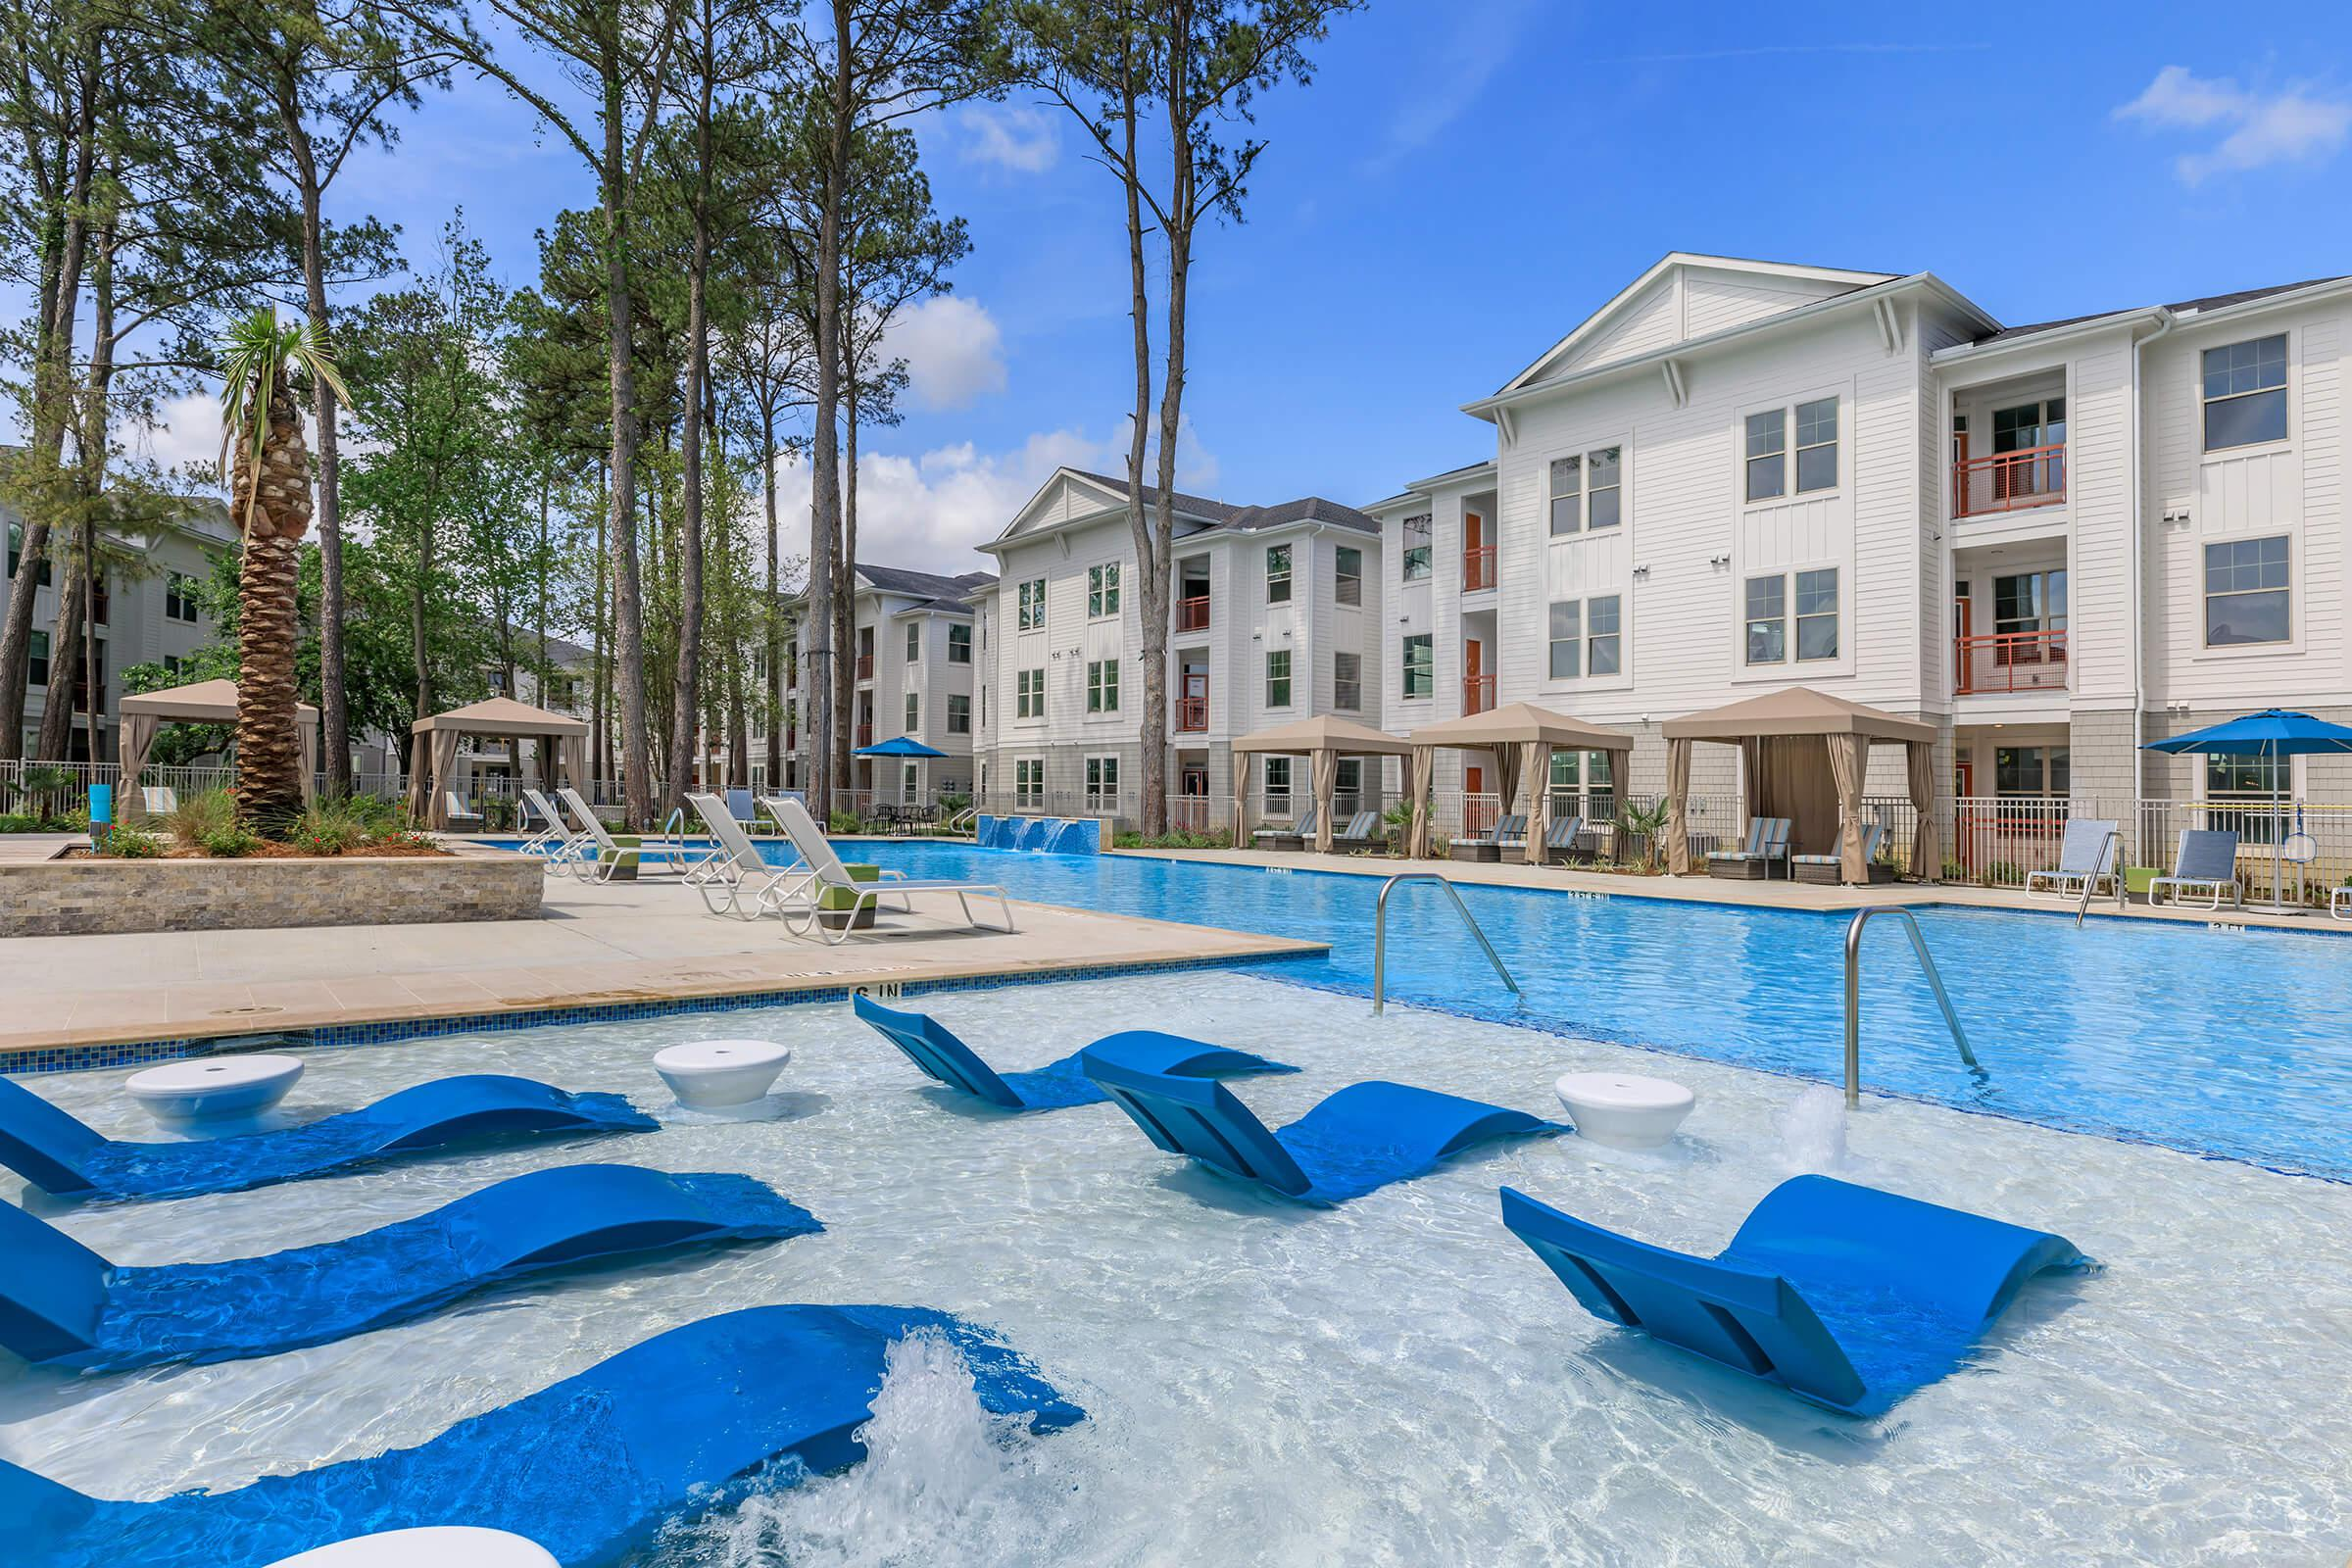 Relax poolside at Ariza Gosling in Spring, Texas